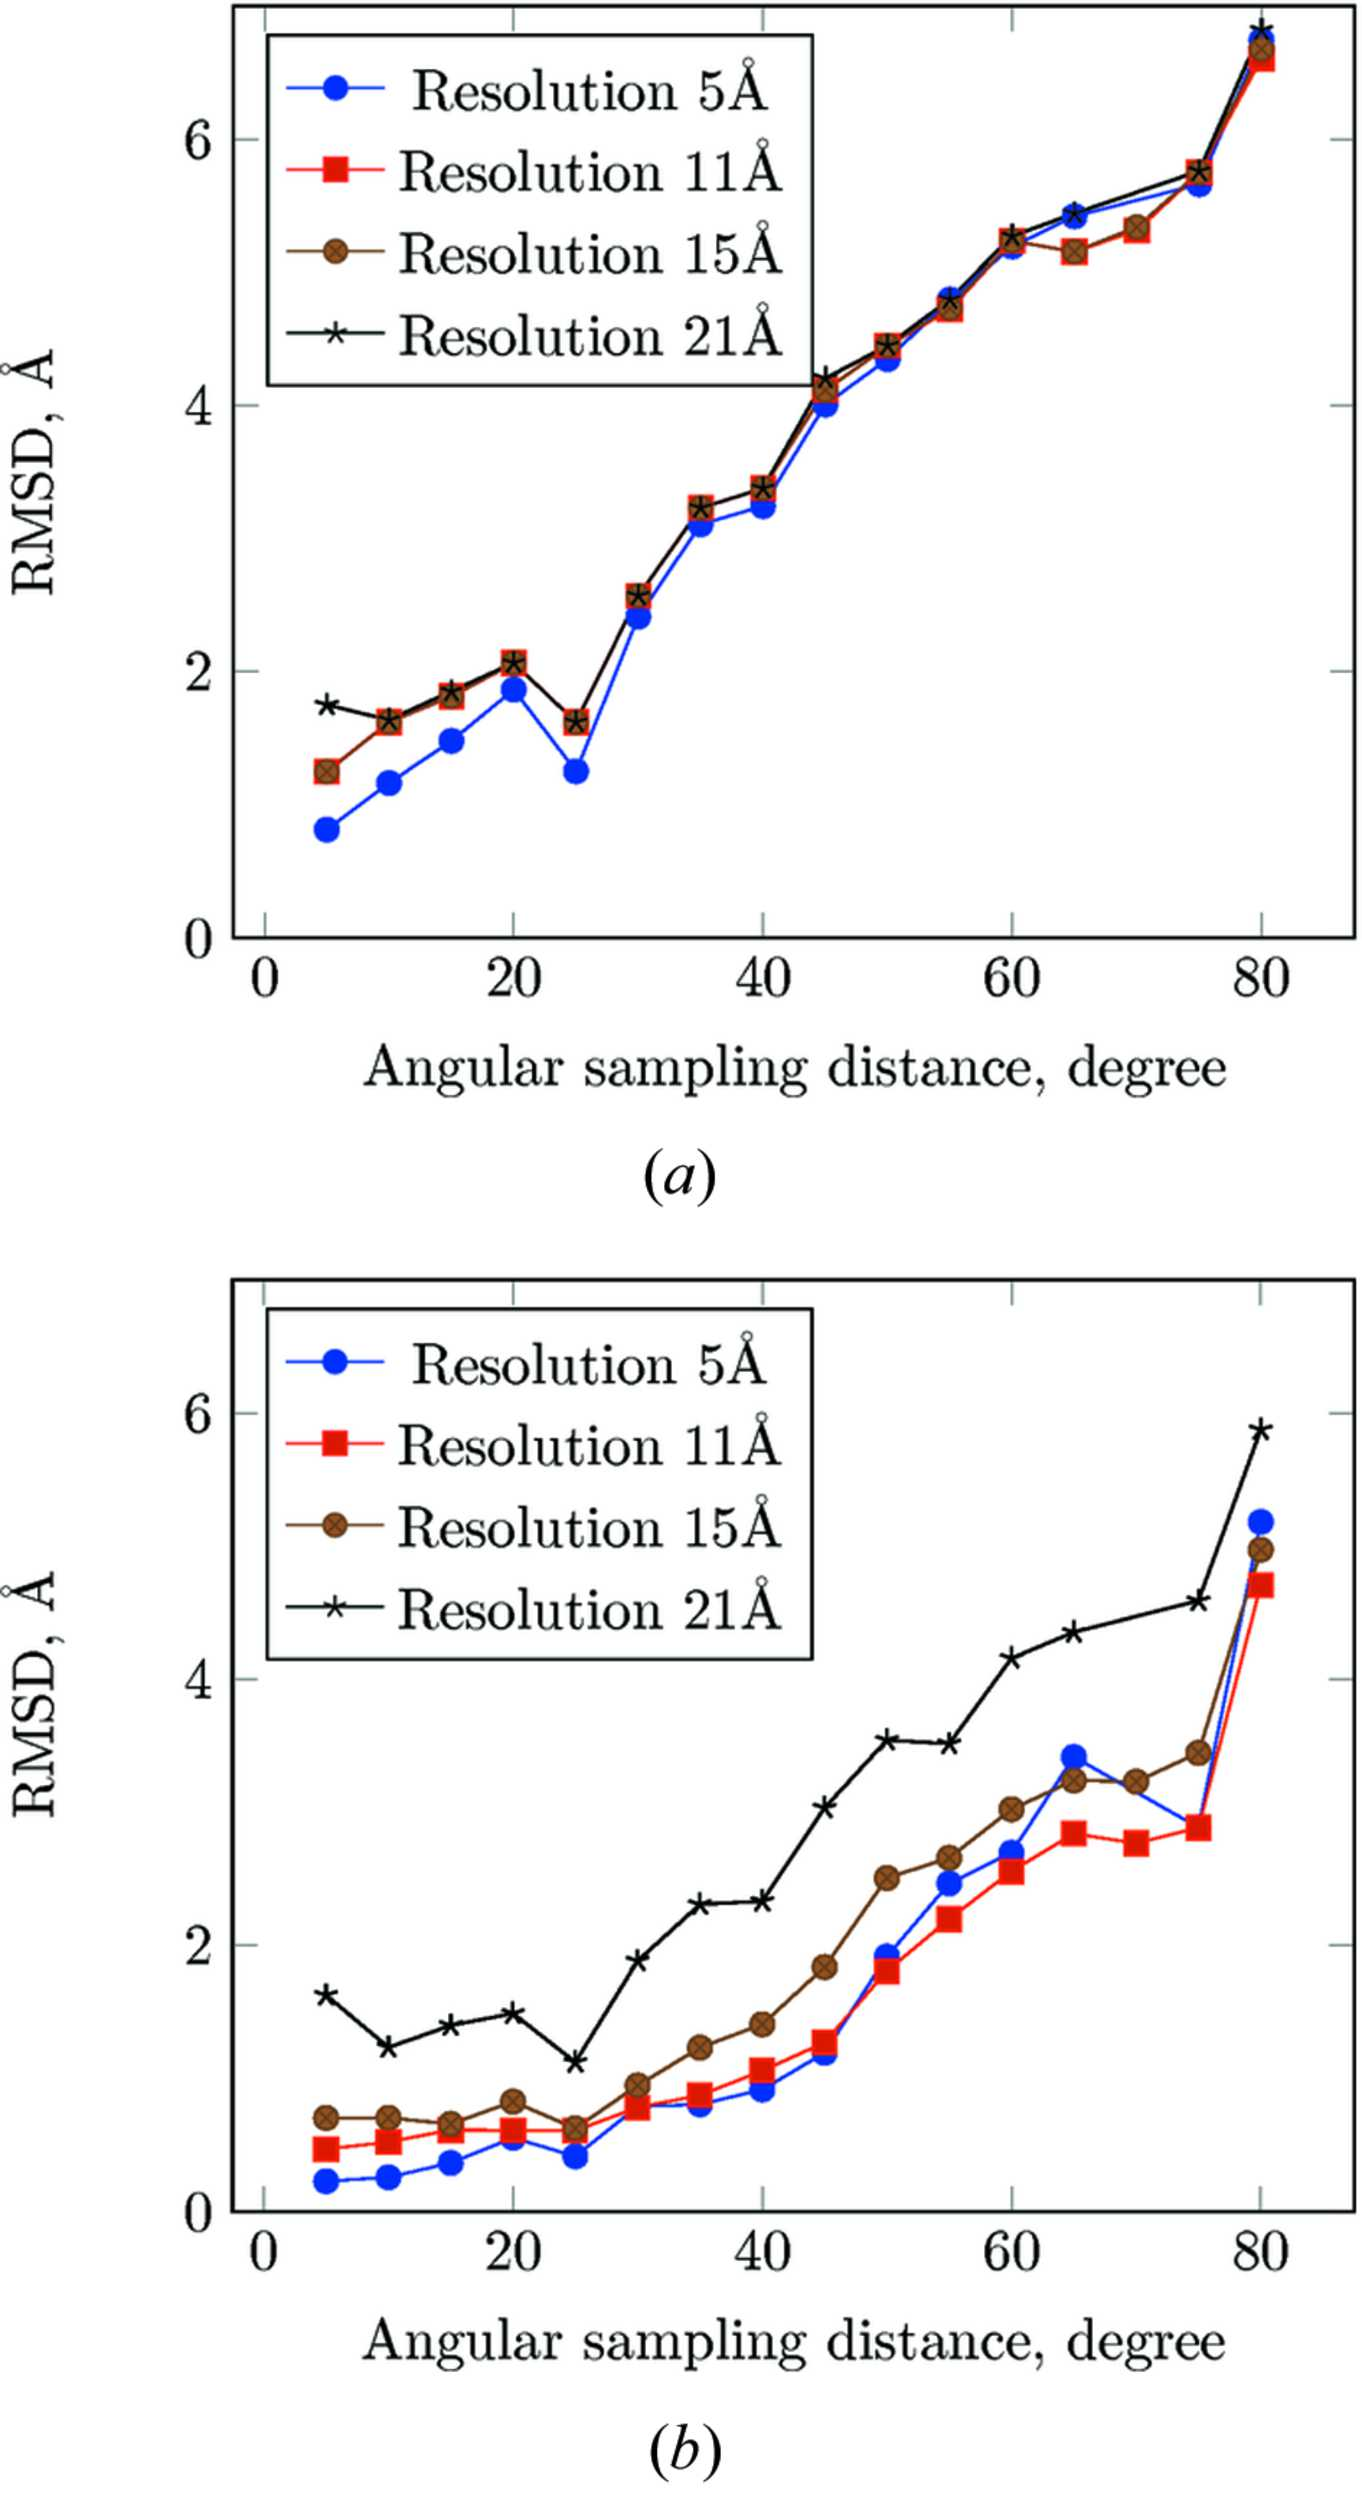 IUCr) A novel fast Fourier transform accelerated off-grid